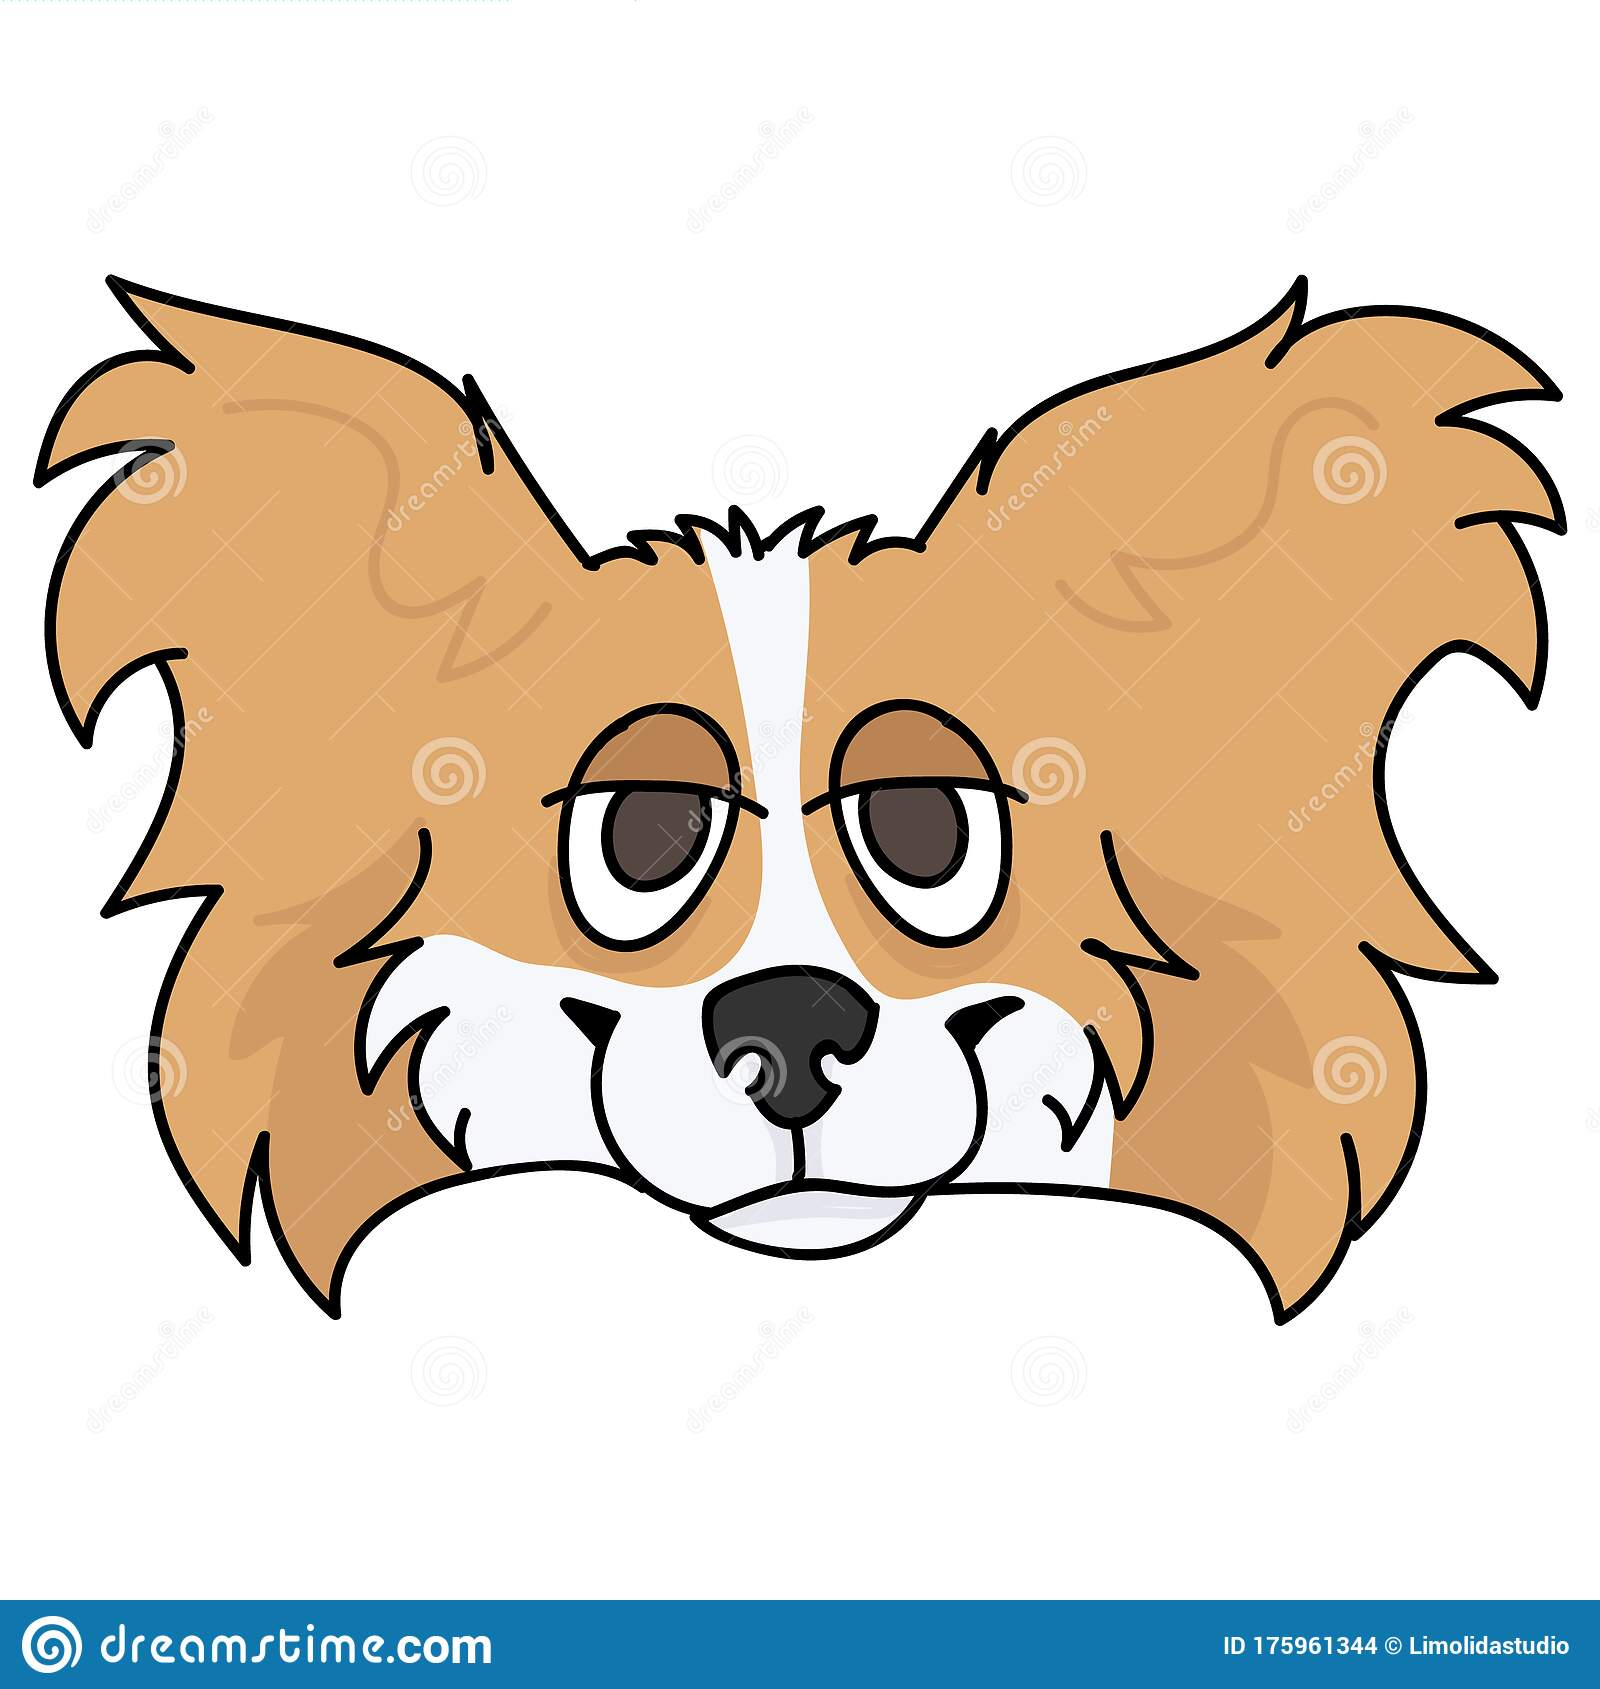 Cute Cartoon Papillon Dog Breed Face Vector Clipart Pedigree Kennel Doggie Breed For Dog Lovers Purebred Domestic Stock Vector Illustration Of Papillon Hunting 175961344